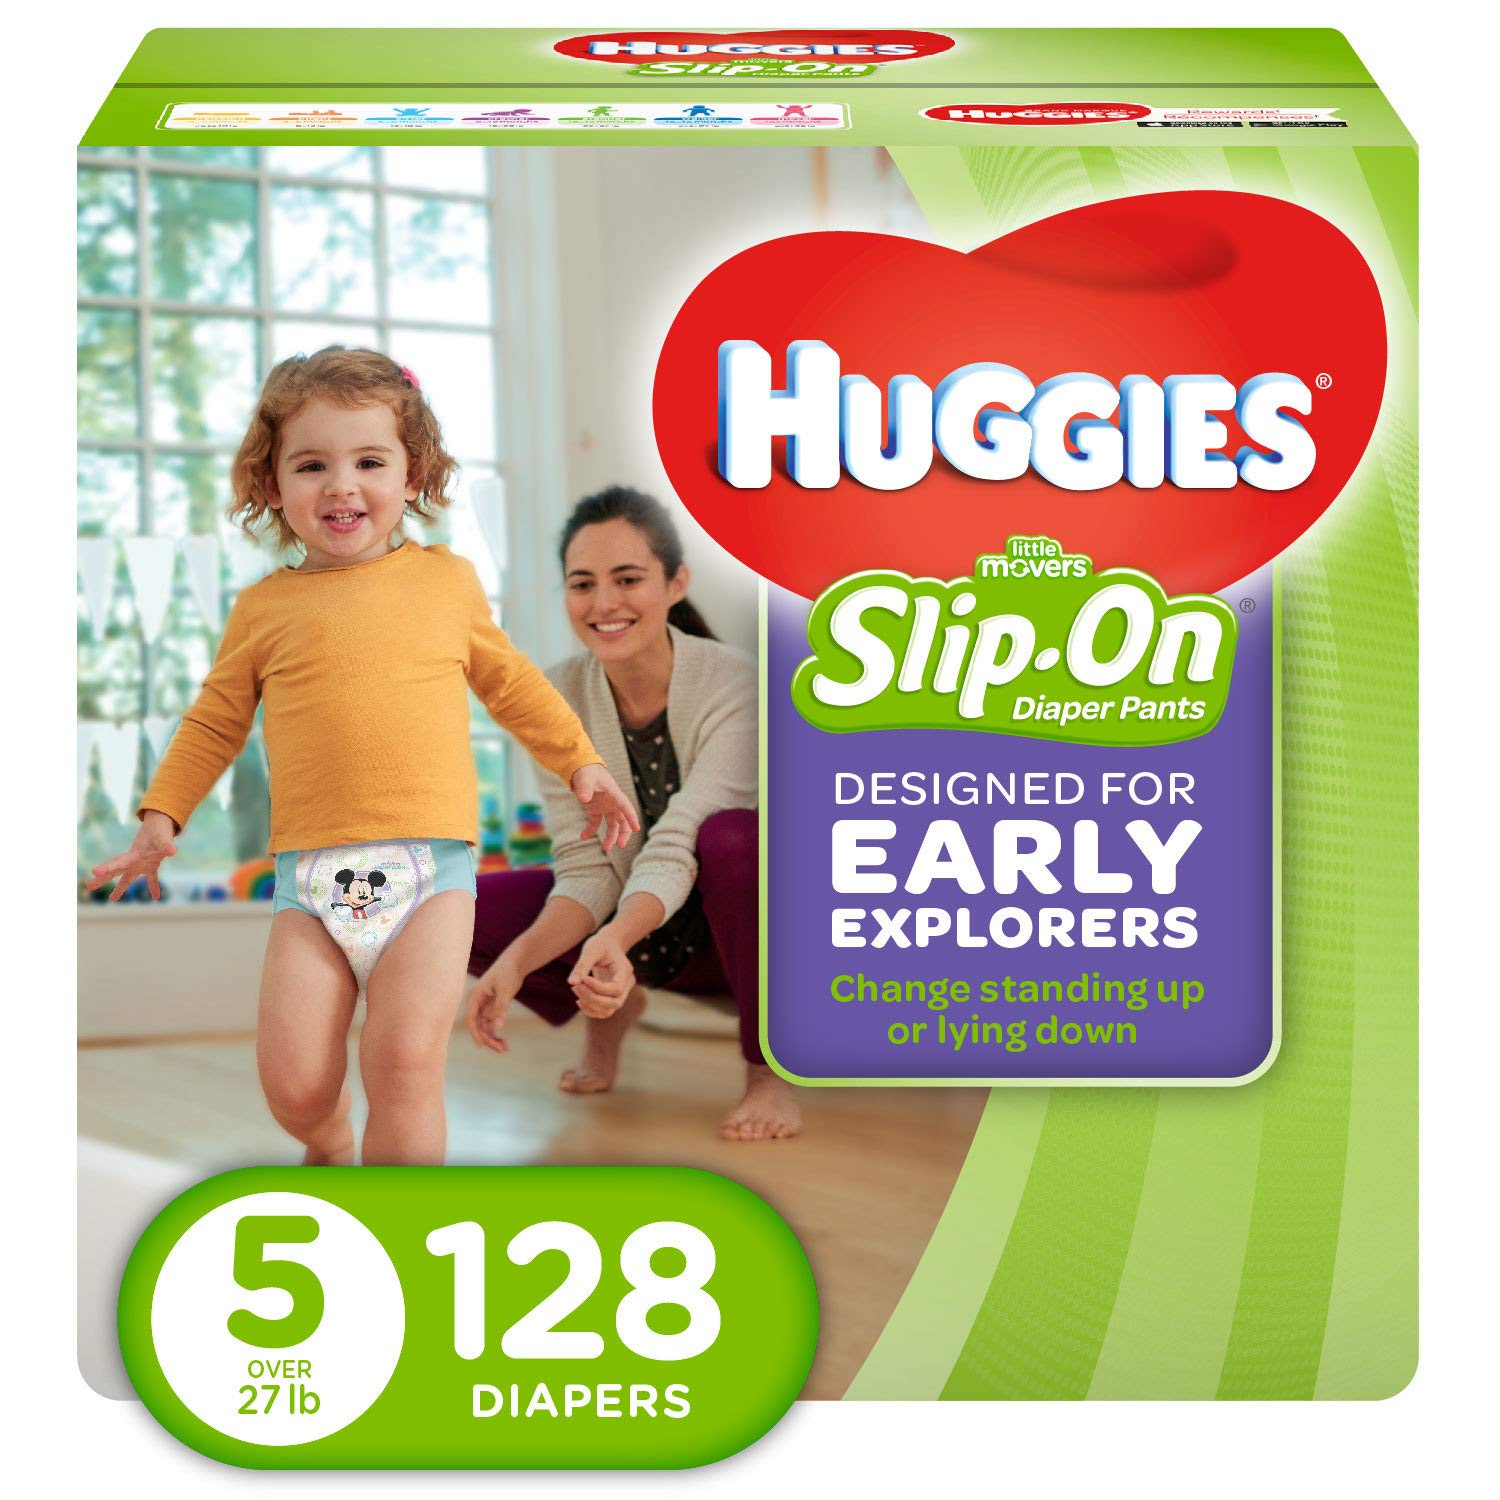 HUGGIES Little Movers Slip On Diaper Pants, Size 5, 128 Count, ECONOMY PLUS